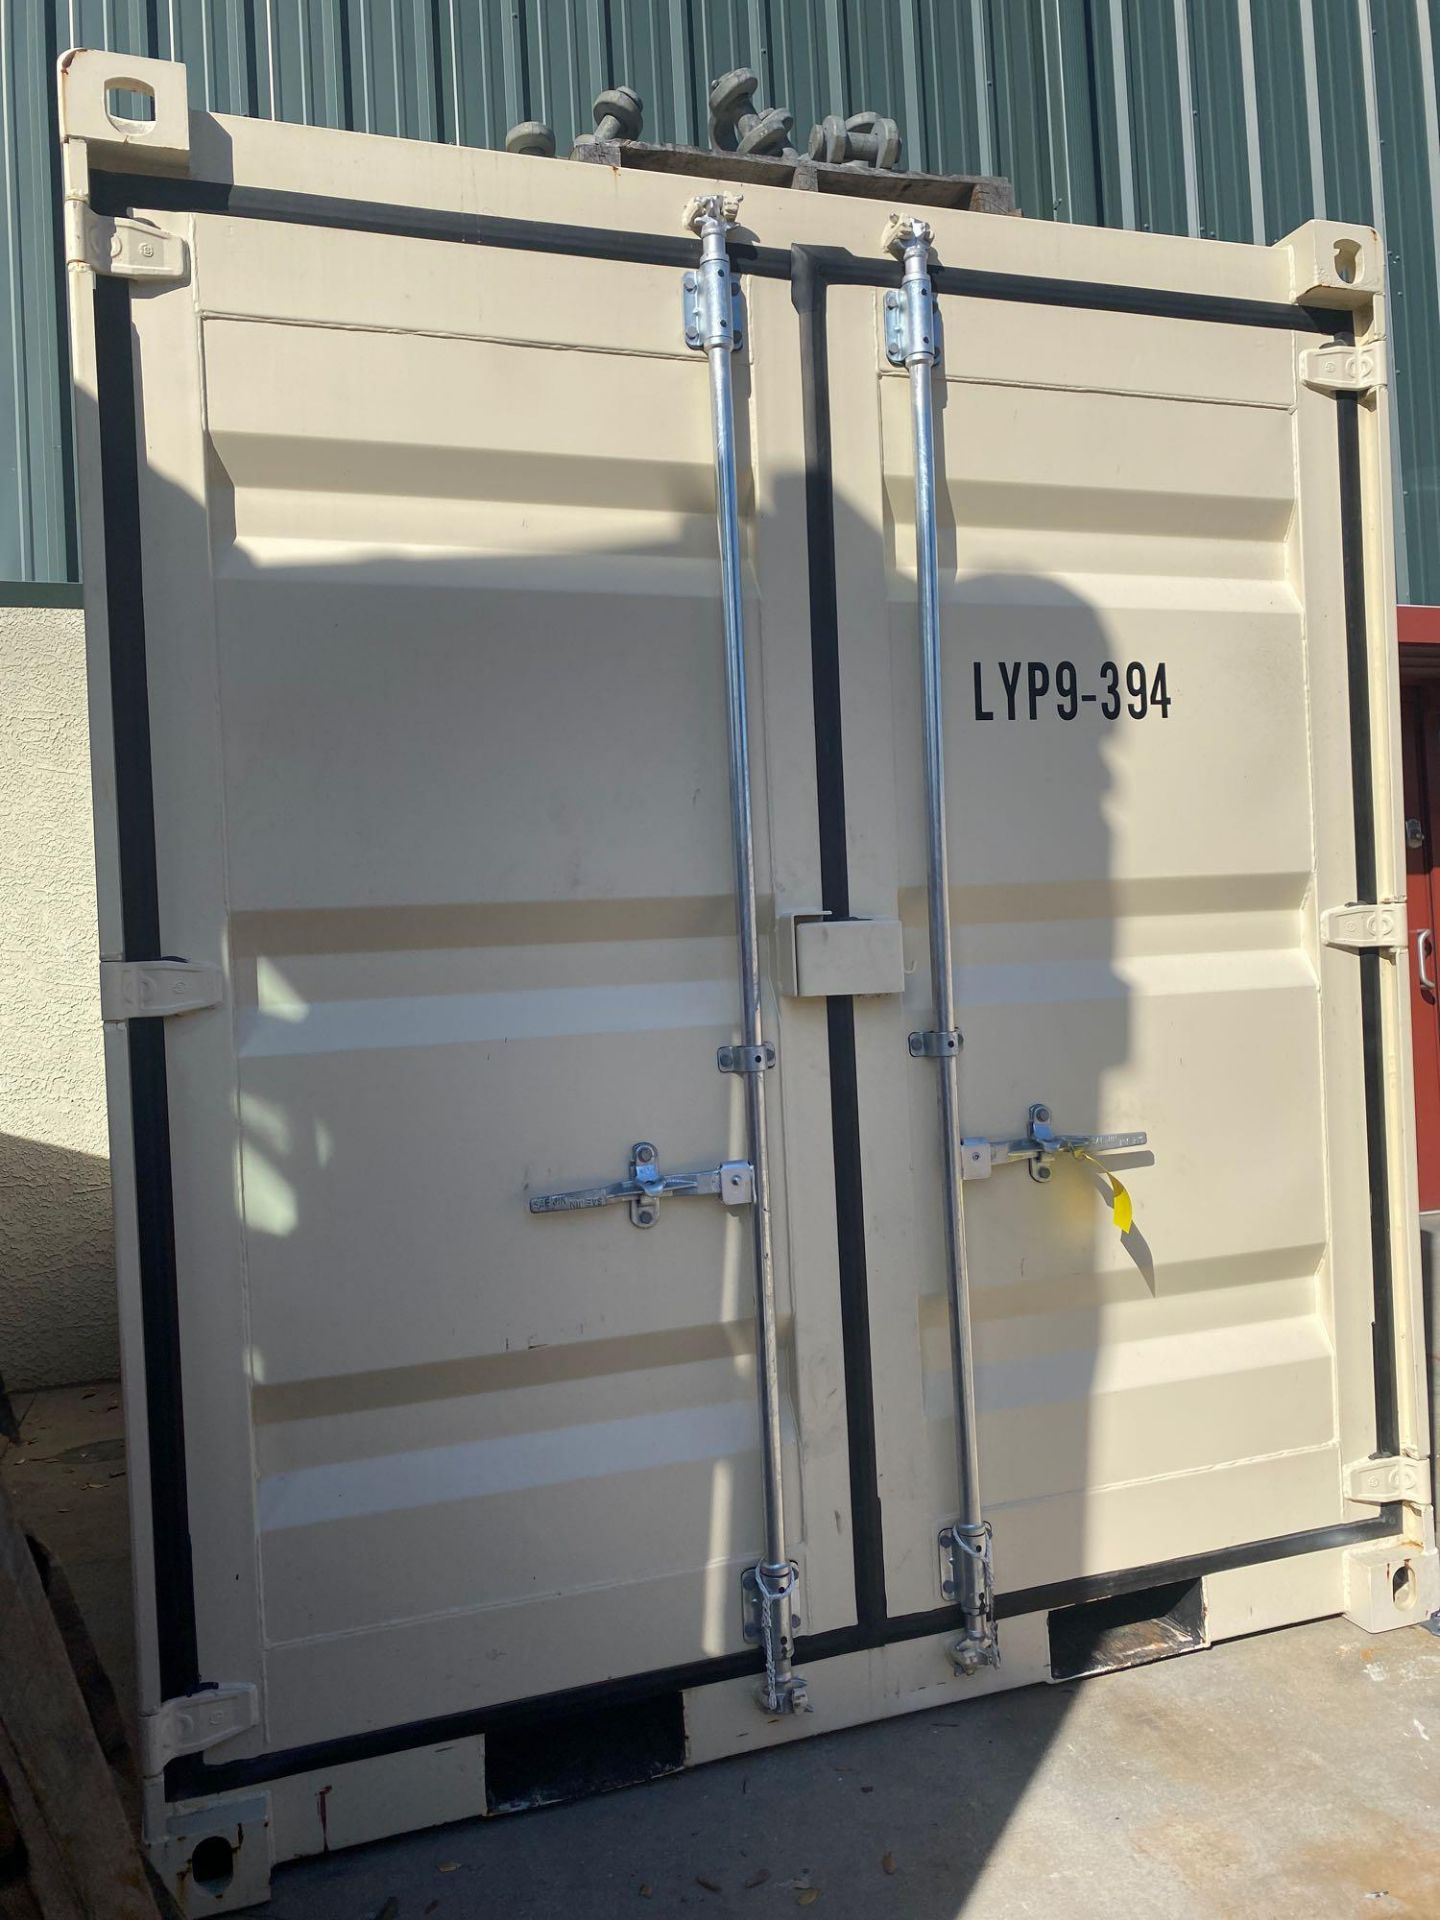 UNUSED 2020 SHIPPING/OFFICE CONTAINER WITH SIDE DOOR, FORK POCKETS, WINDOW - Image 5 of 5